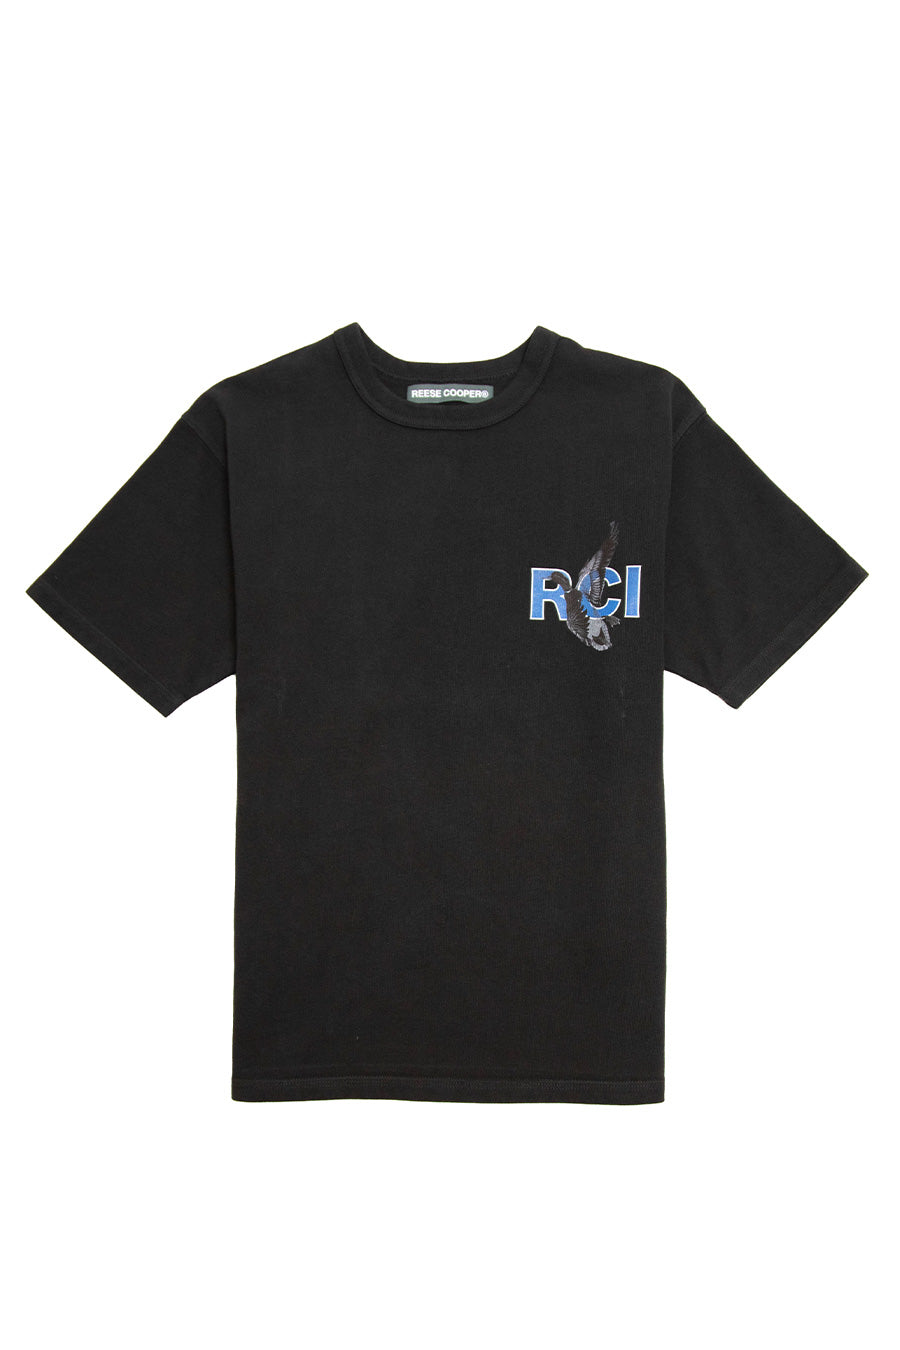 Reese Cooper - Black Duck Print T-Shirt | 1032 SPACE